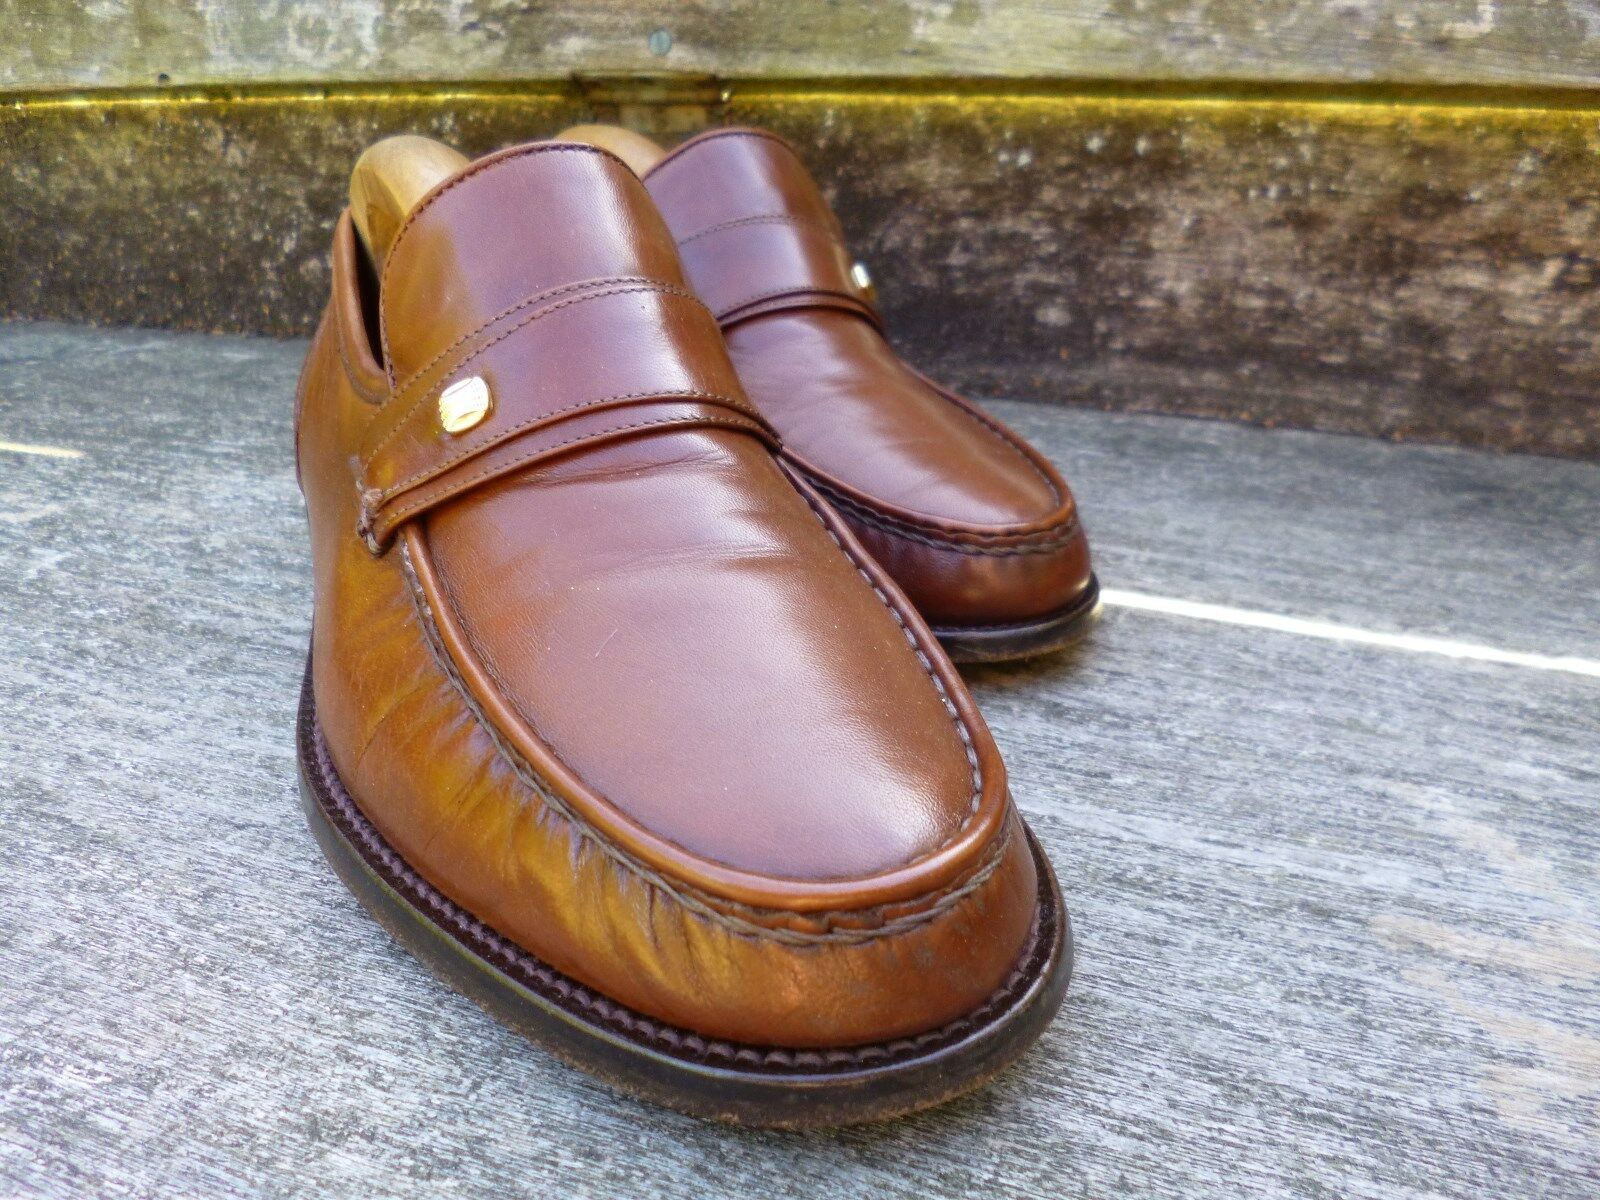 CHEANEY / CHURCH  LOAFERS – BROWN / TAN - UK 7 – EXCELLENT  CONDITION